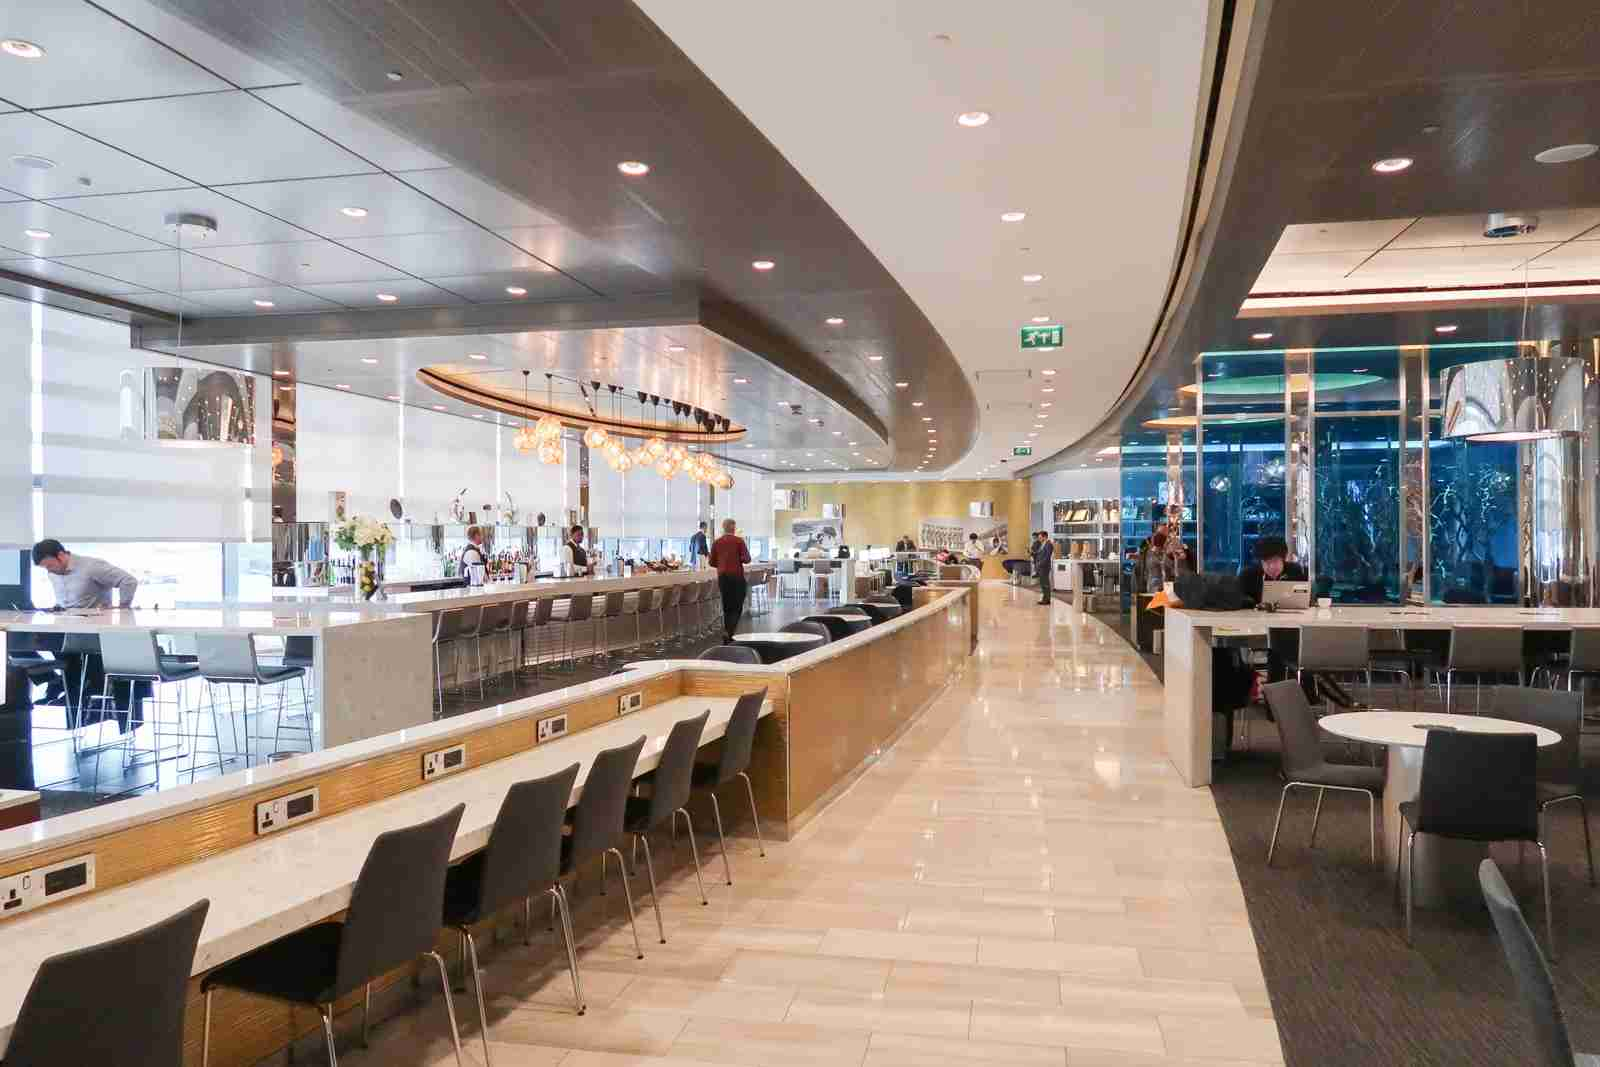 United Club at London Heathrow (Photo by Daniel Ross/The Points Guy)